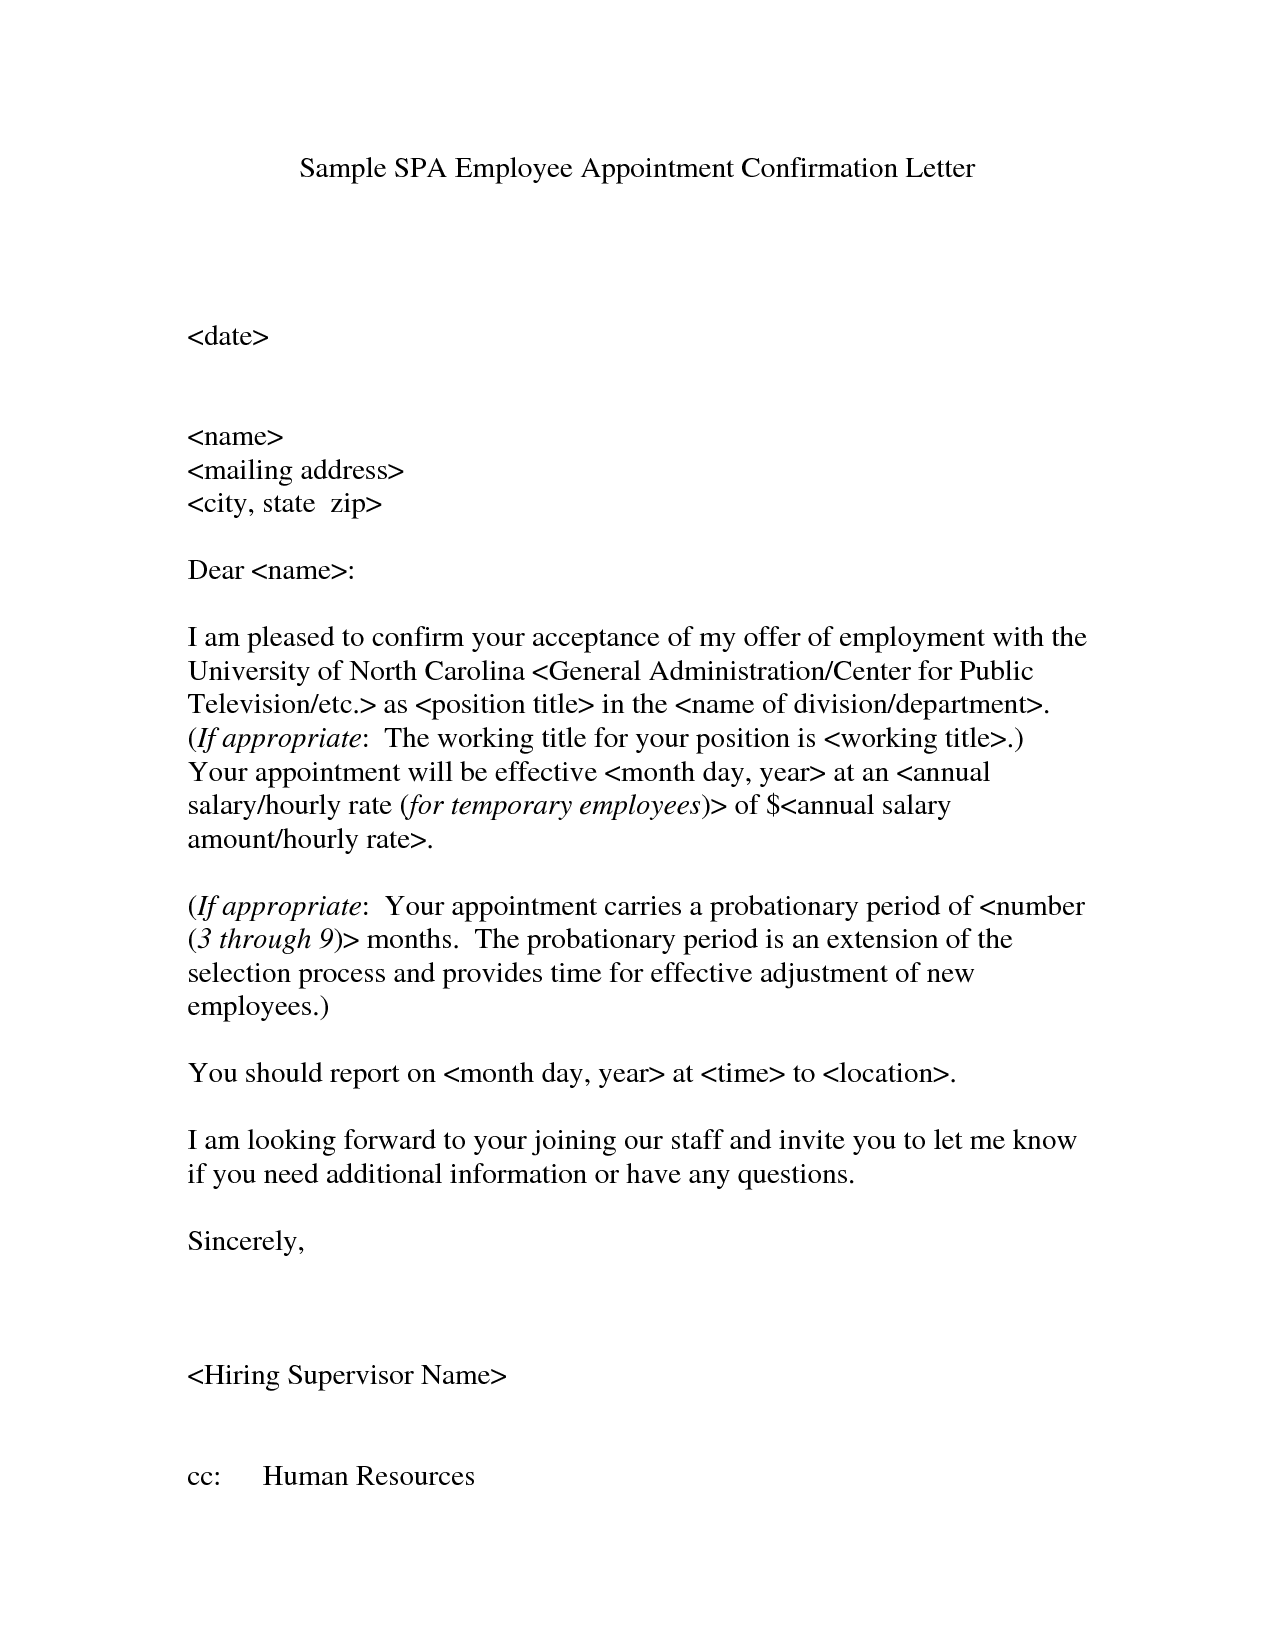 Appointment Confirmation Letter Confirmation Of Appointment Letter